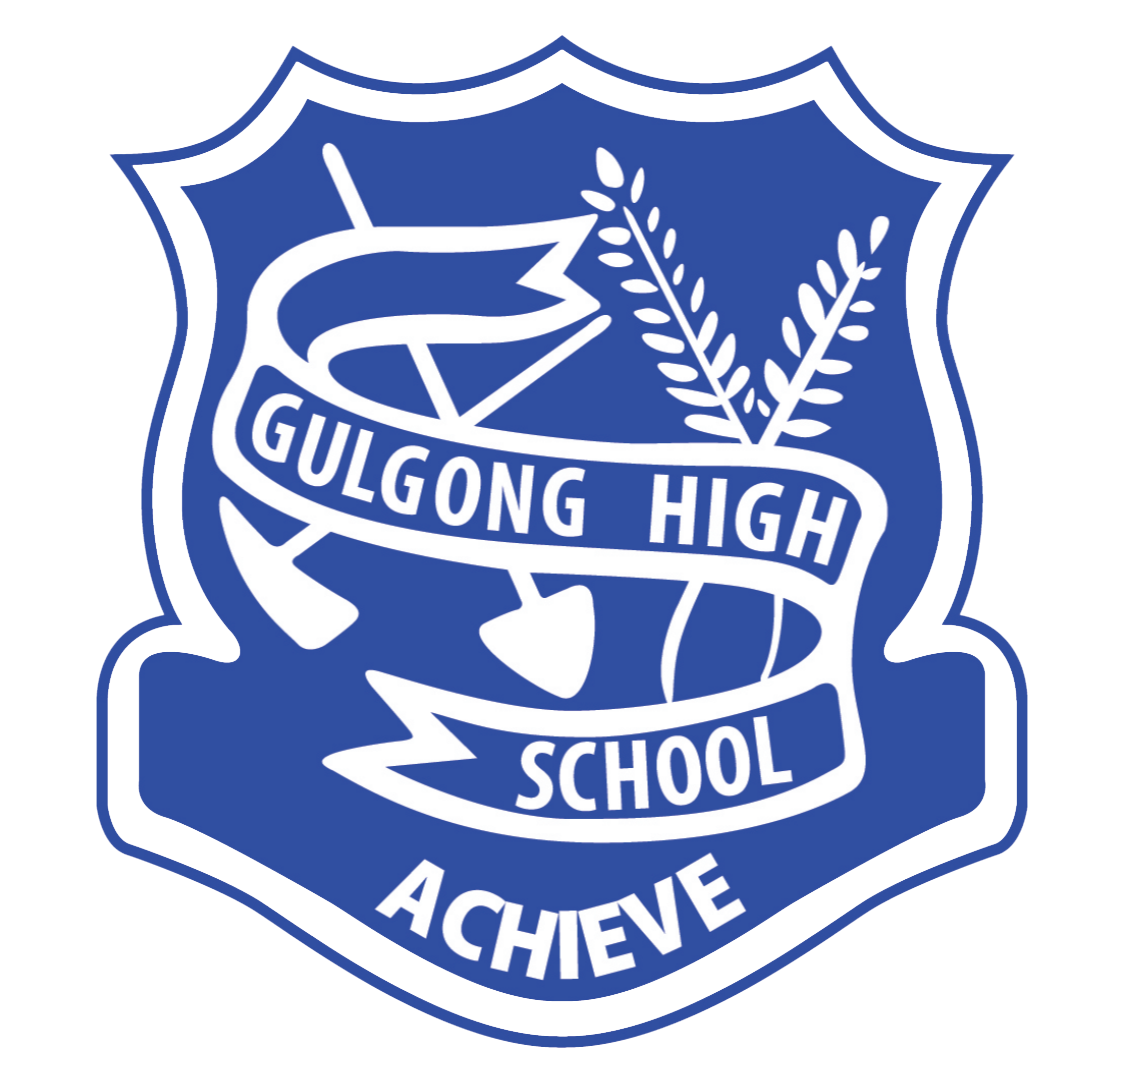 Gulgong High School logo